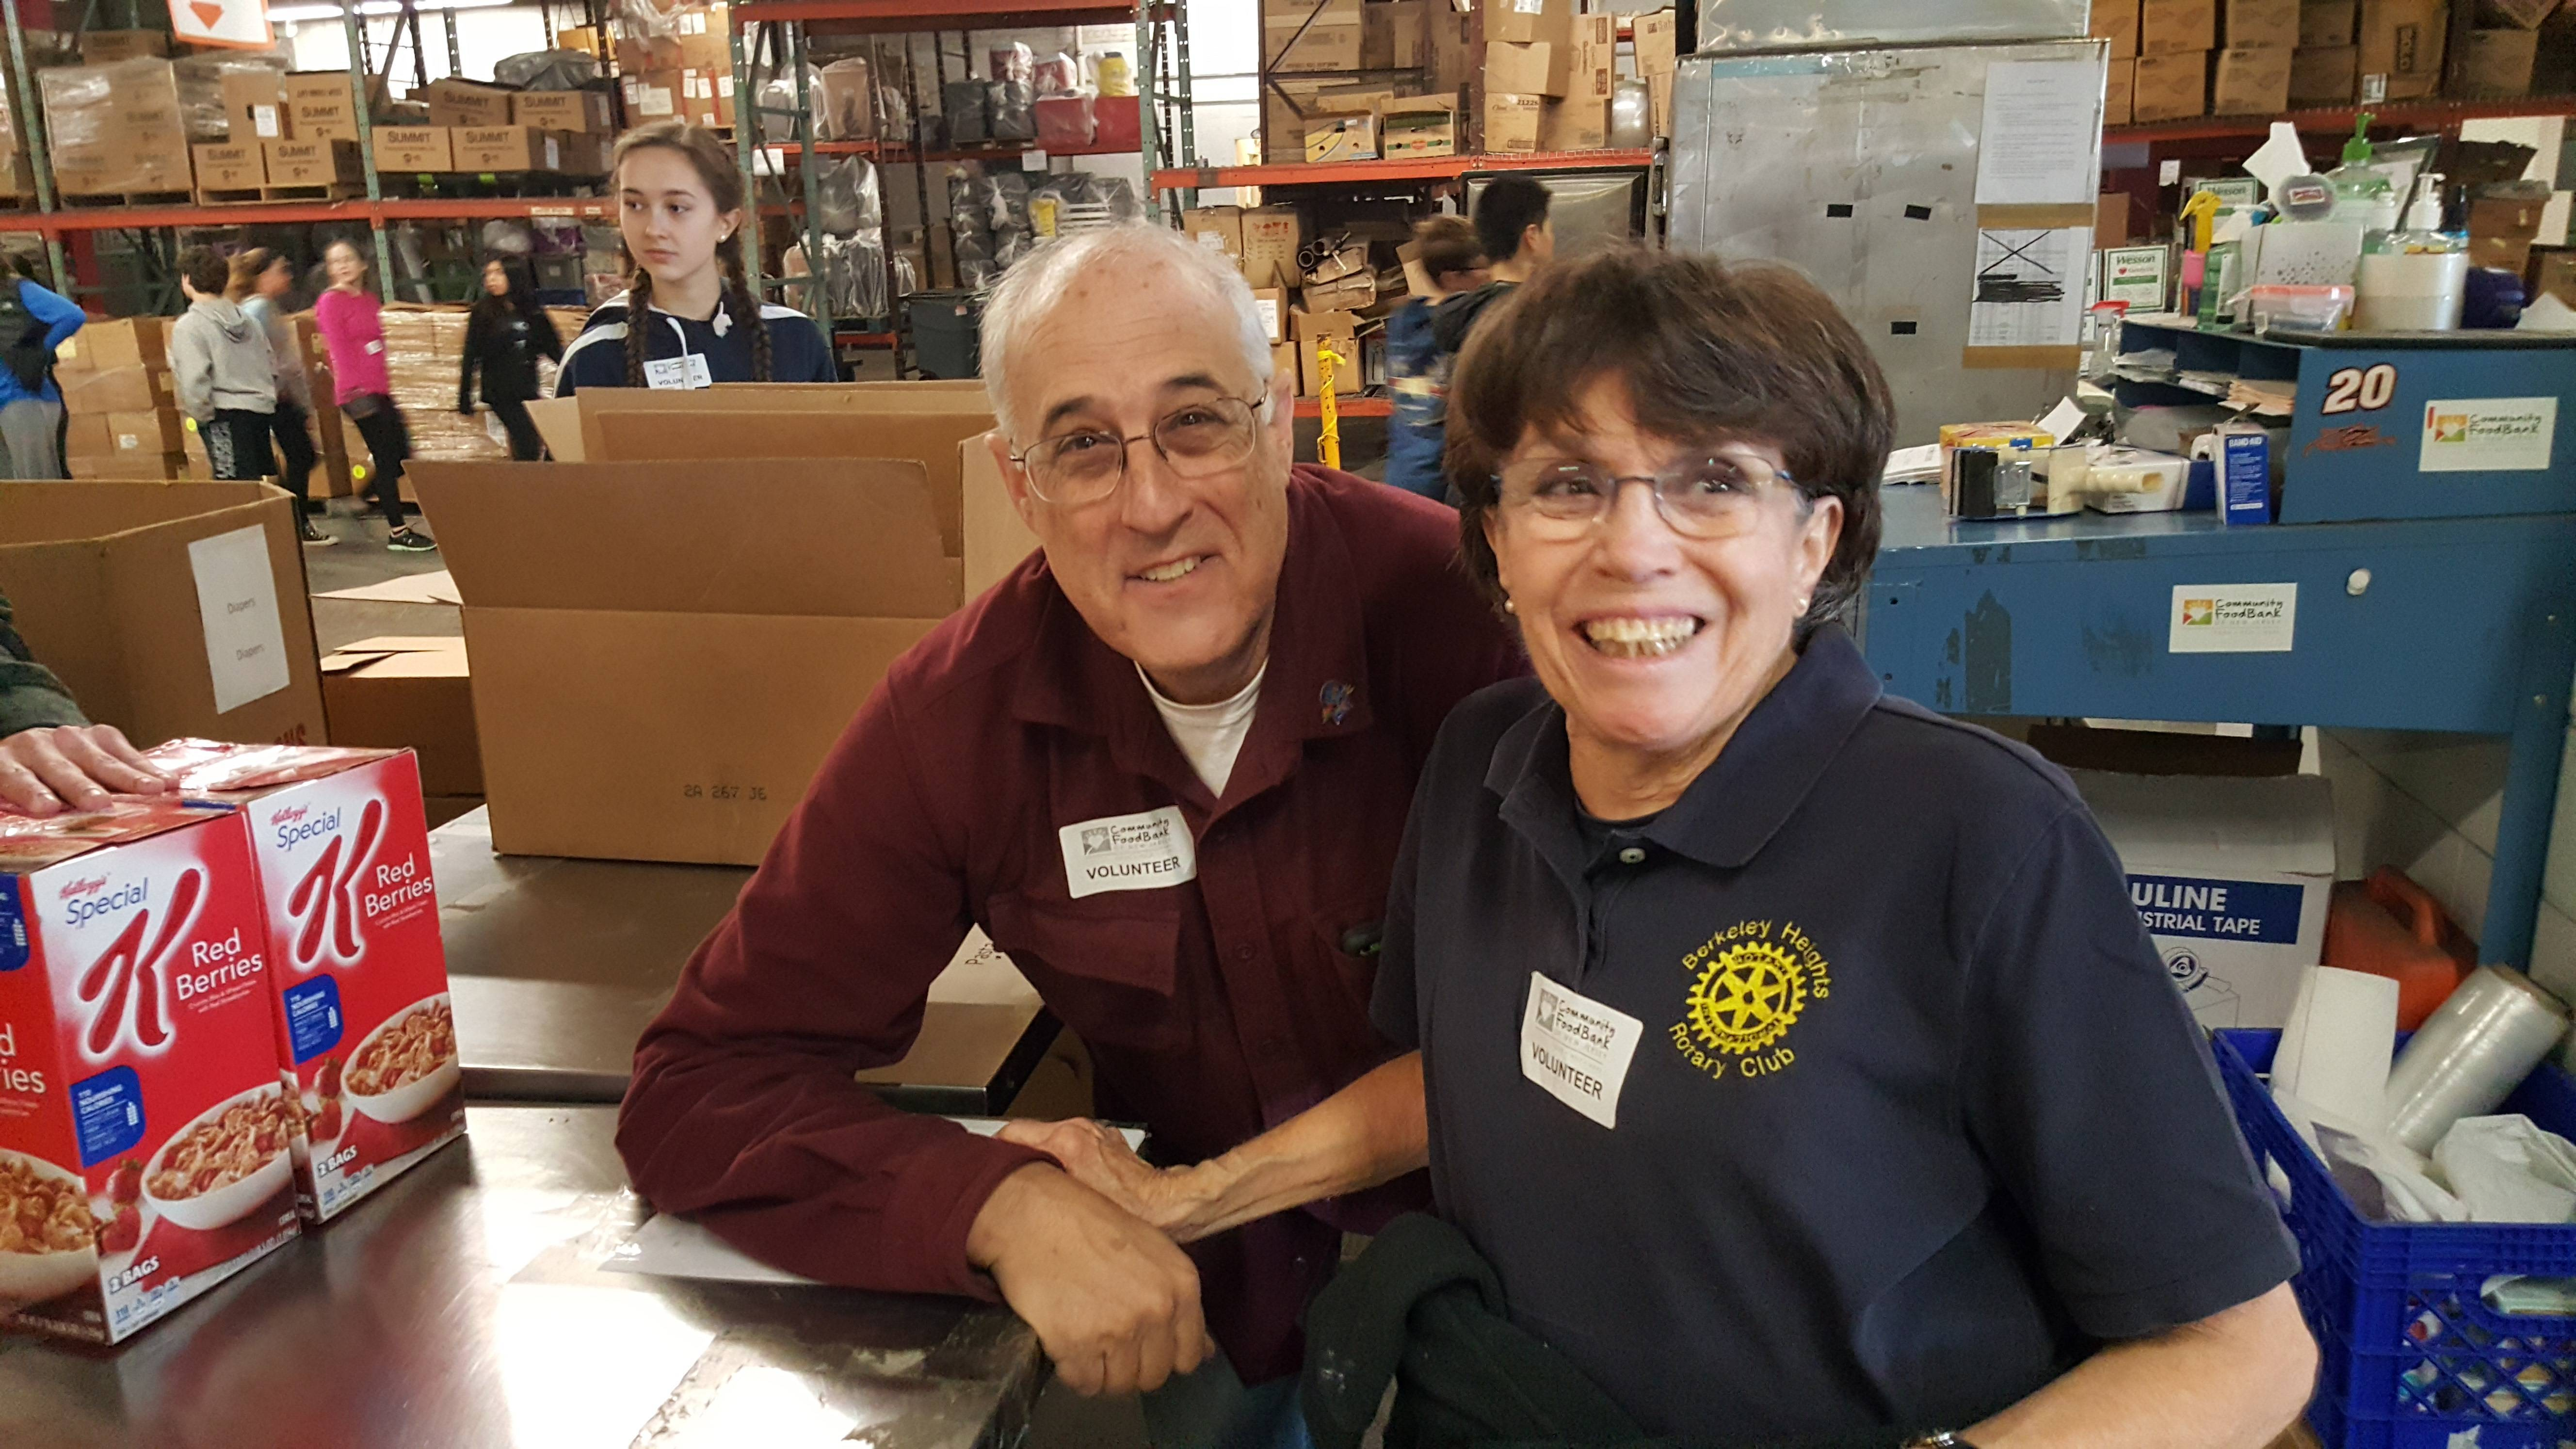 d487f8b53429bd6f4187_Pam_and_Gerry_at_Food_Bank.jpg